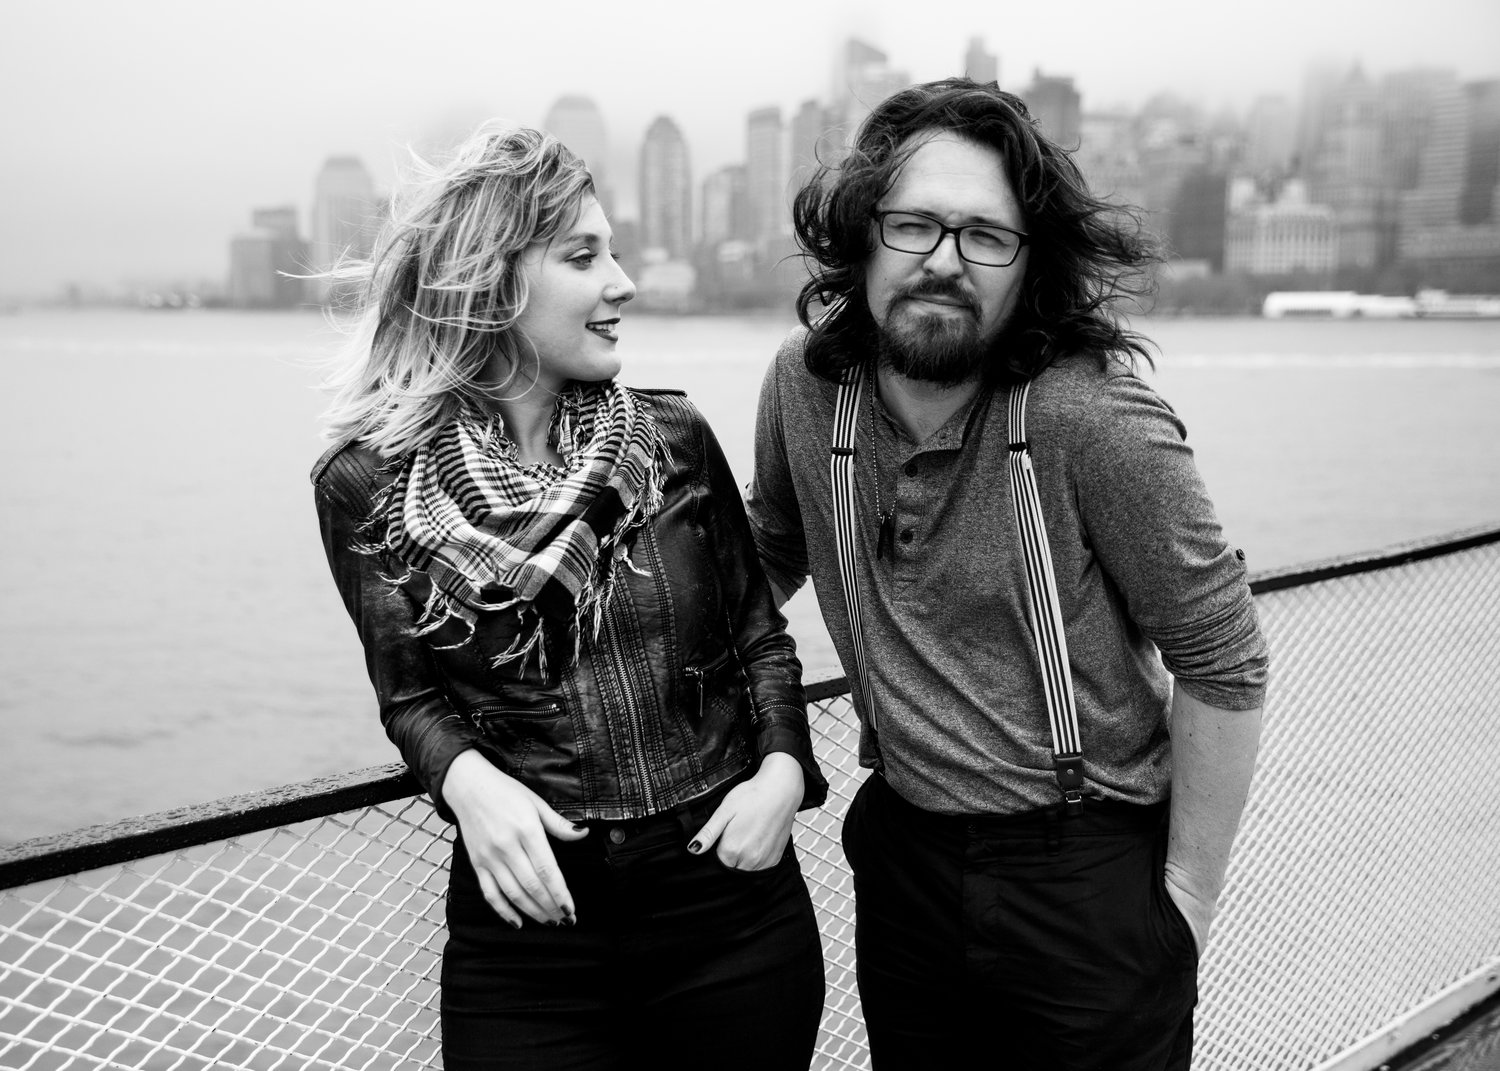 Adrian + Meredith return to Mile of Music in Appleton this August 2019 (Courtesy: Adrian + Meredith)